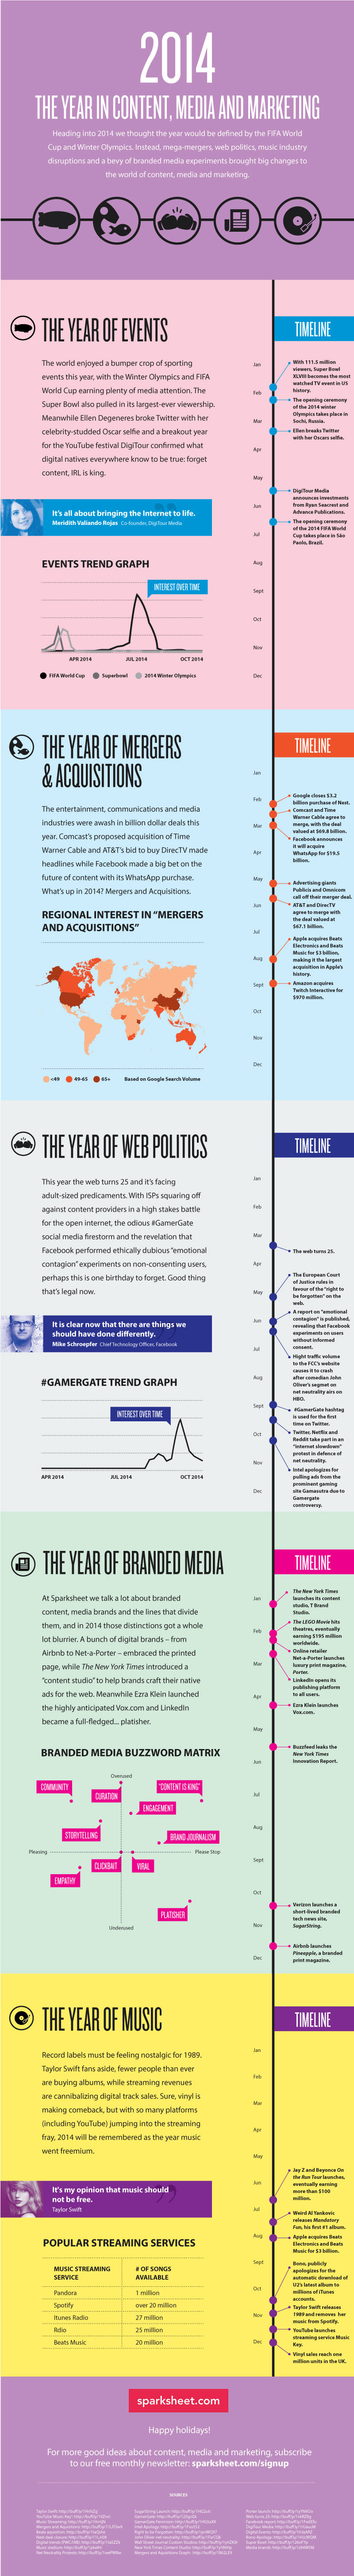 2014: The year of mergers, acquisitions, web politics, branded media, and music - #infographic